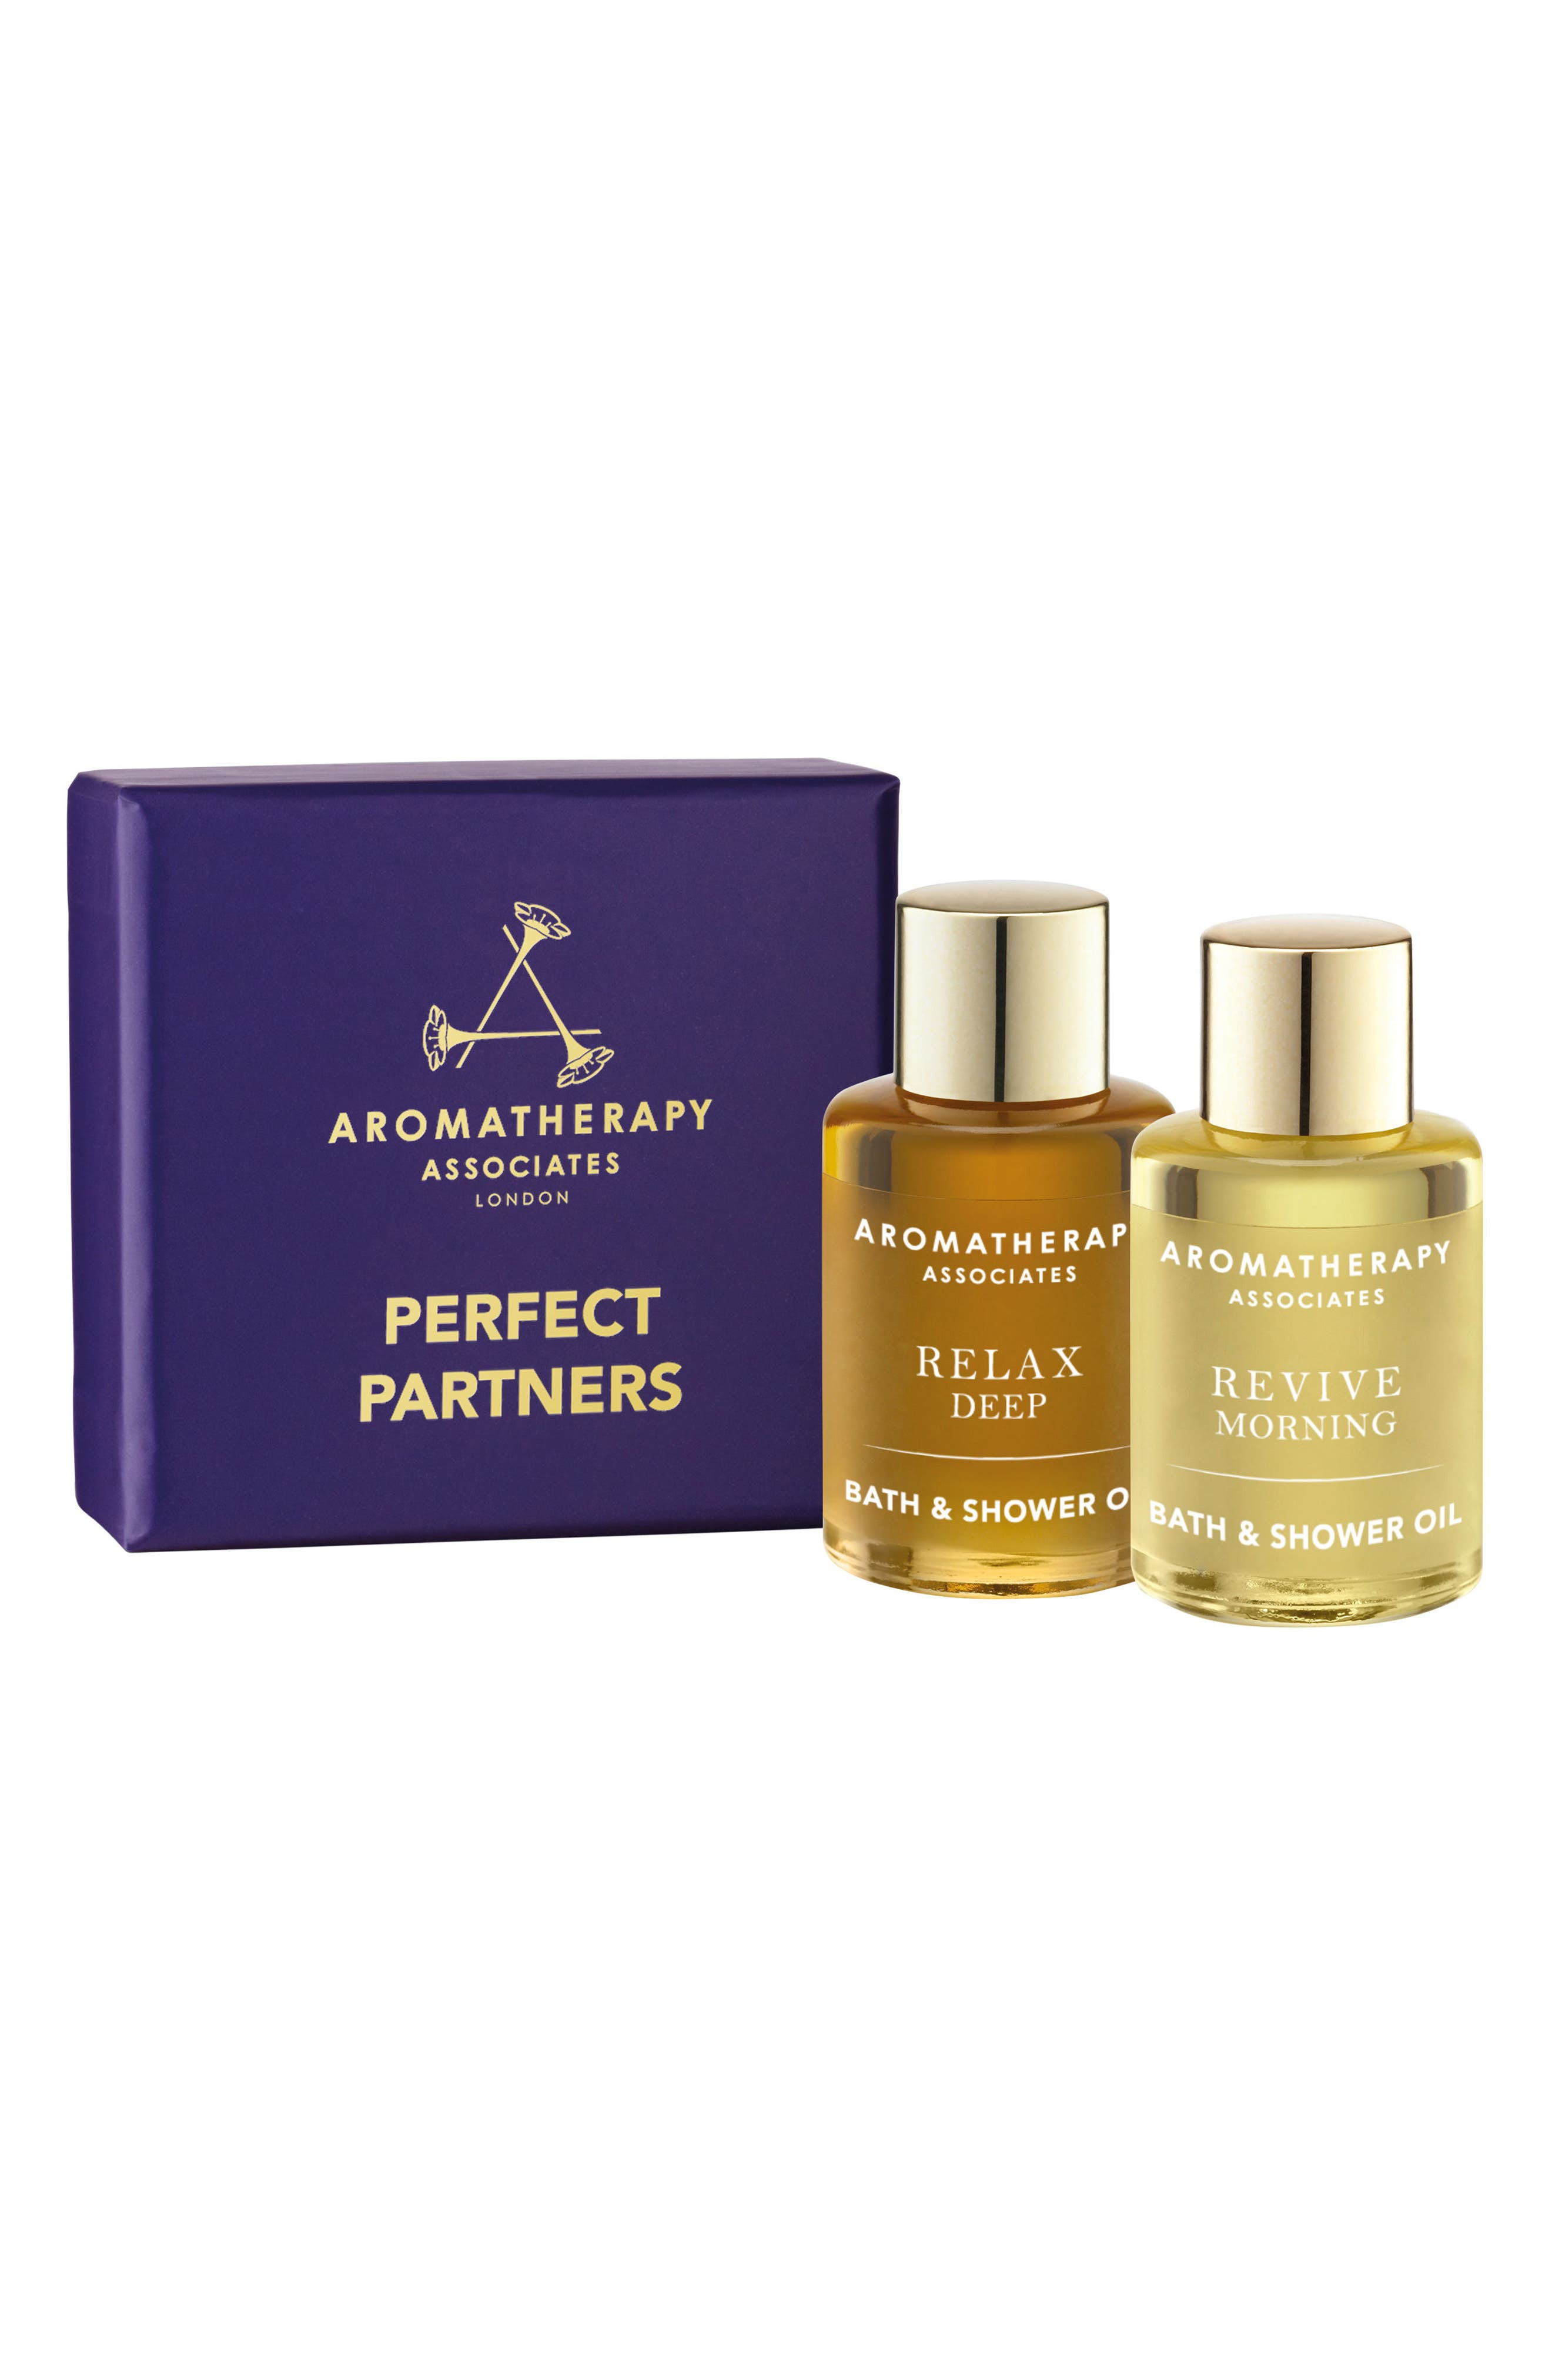 Alternate Image 1 Selected - Aromatherapy Associates Perfect Partners Bath & Shower Oil Duo